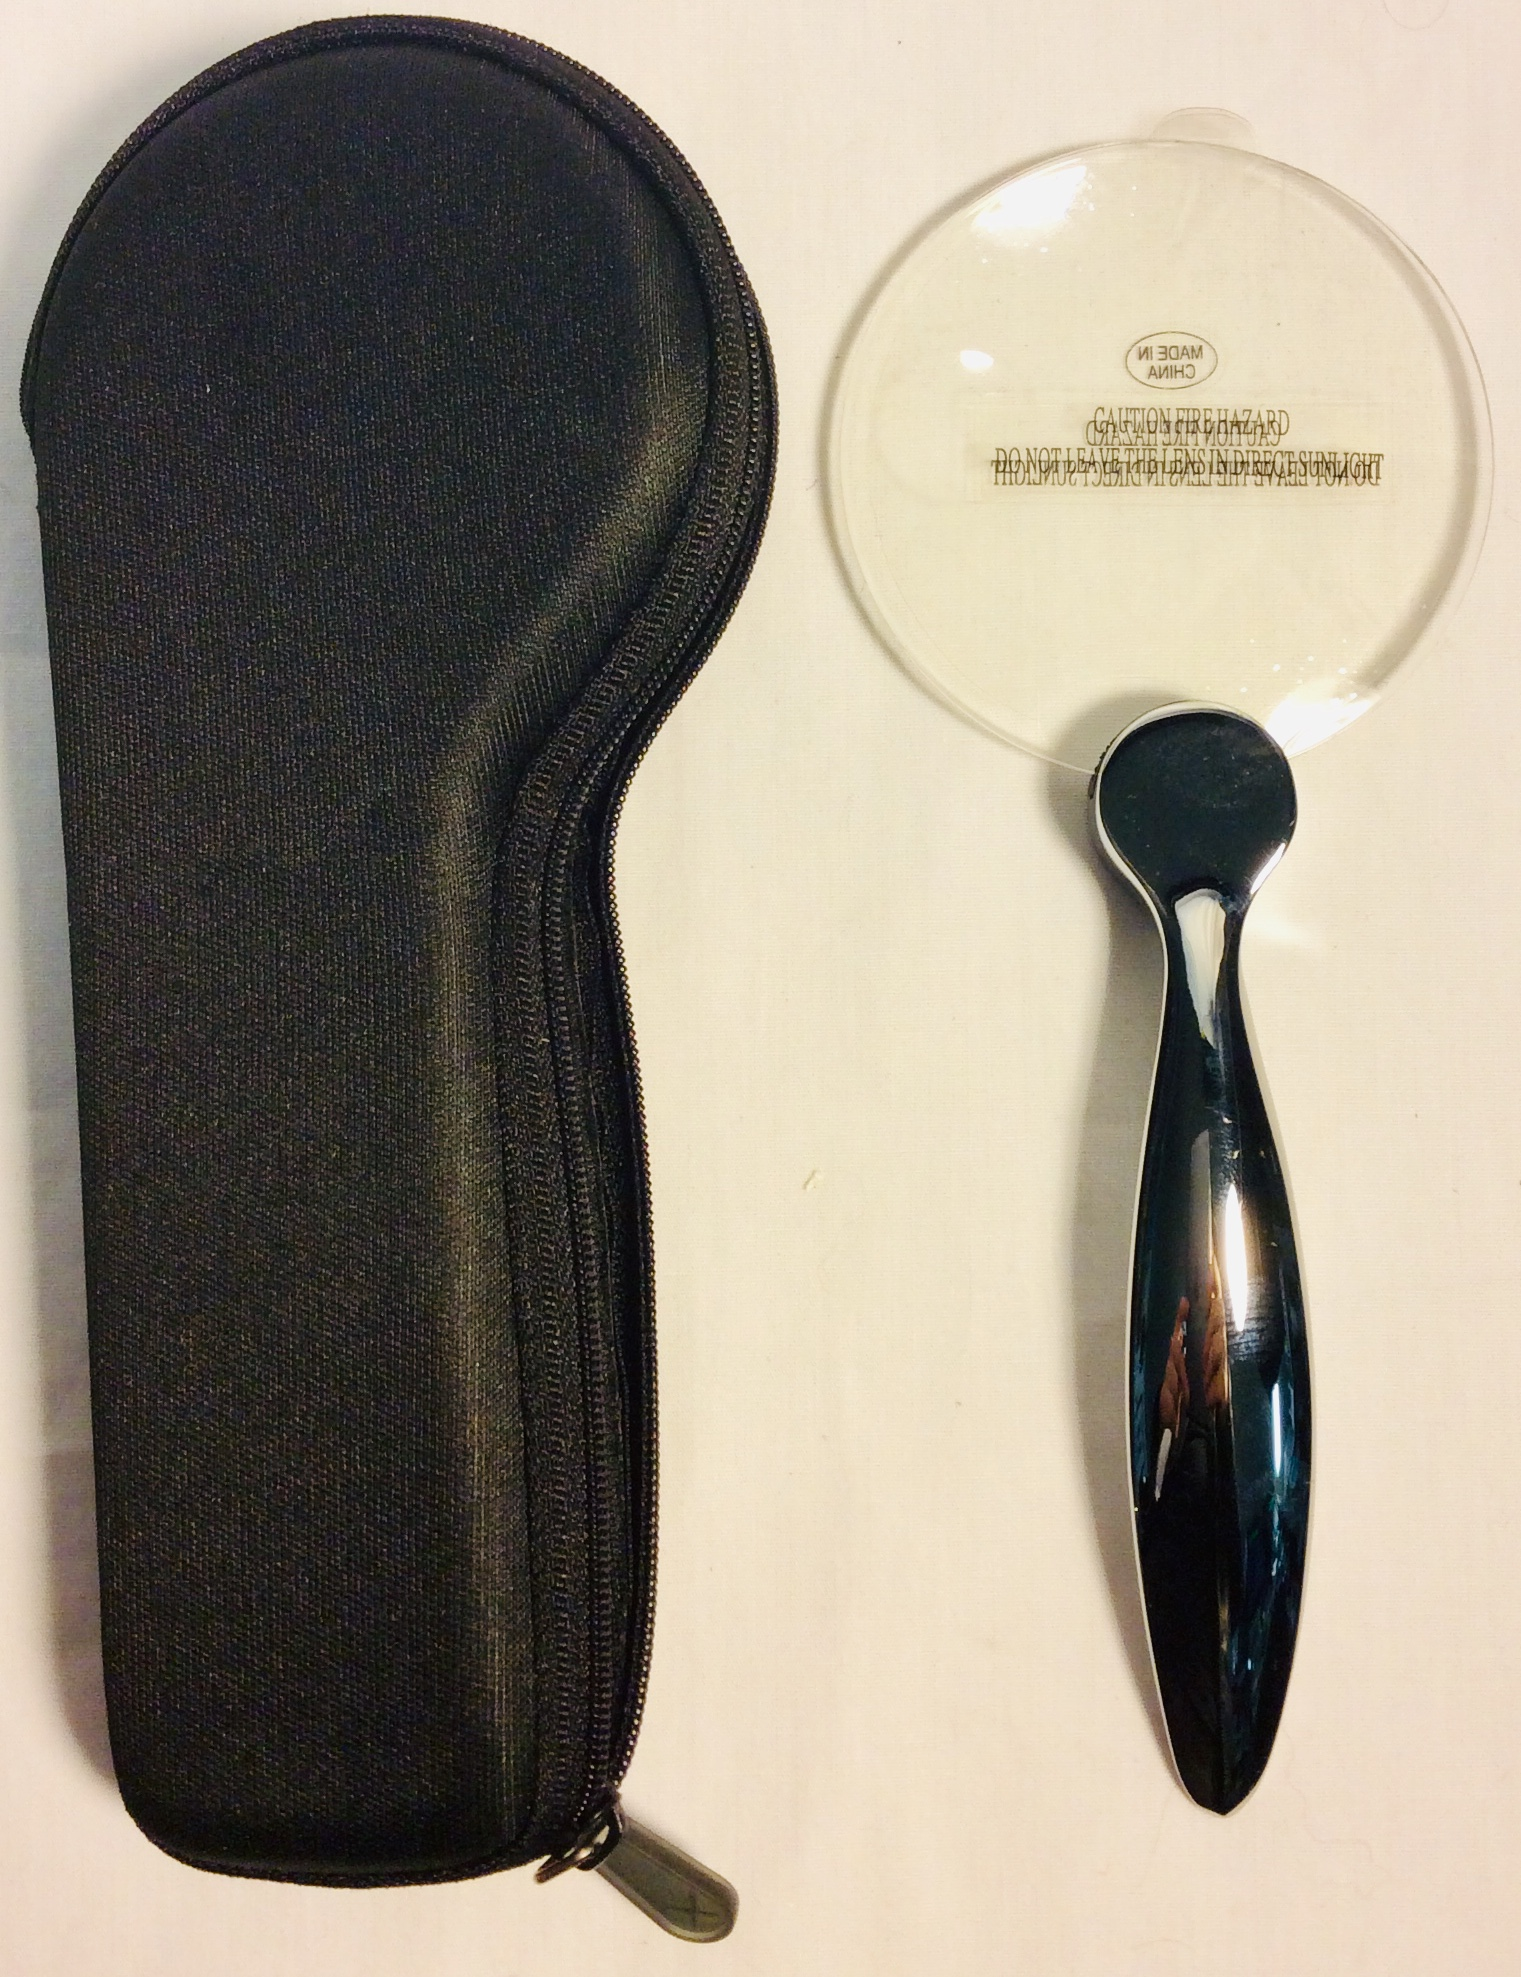 Magnifying glass with silver handle